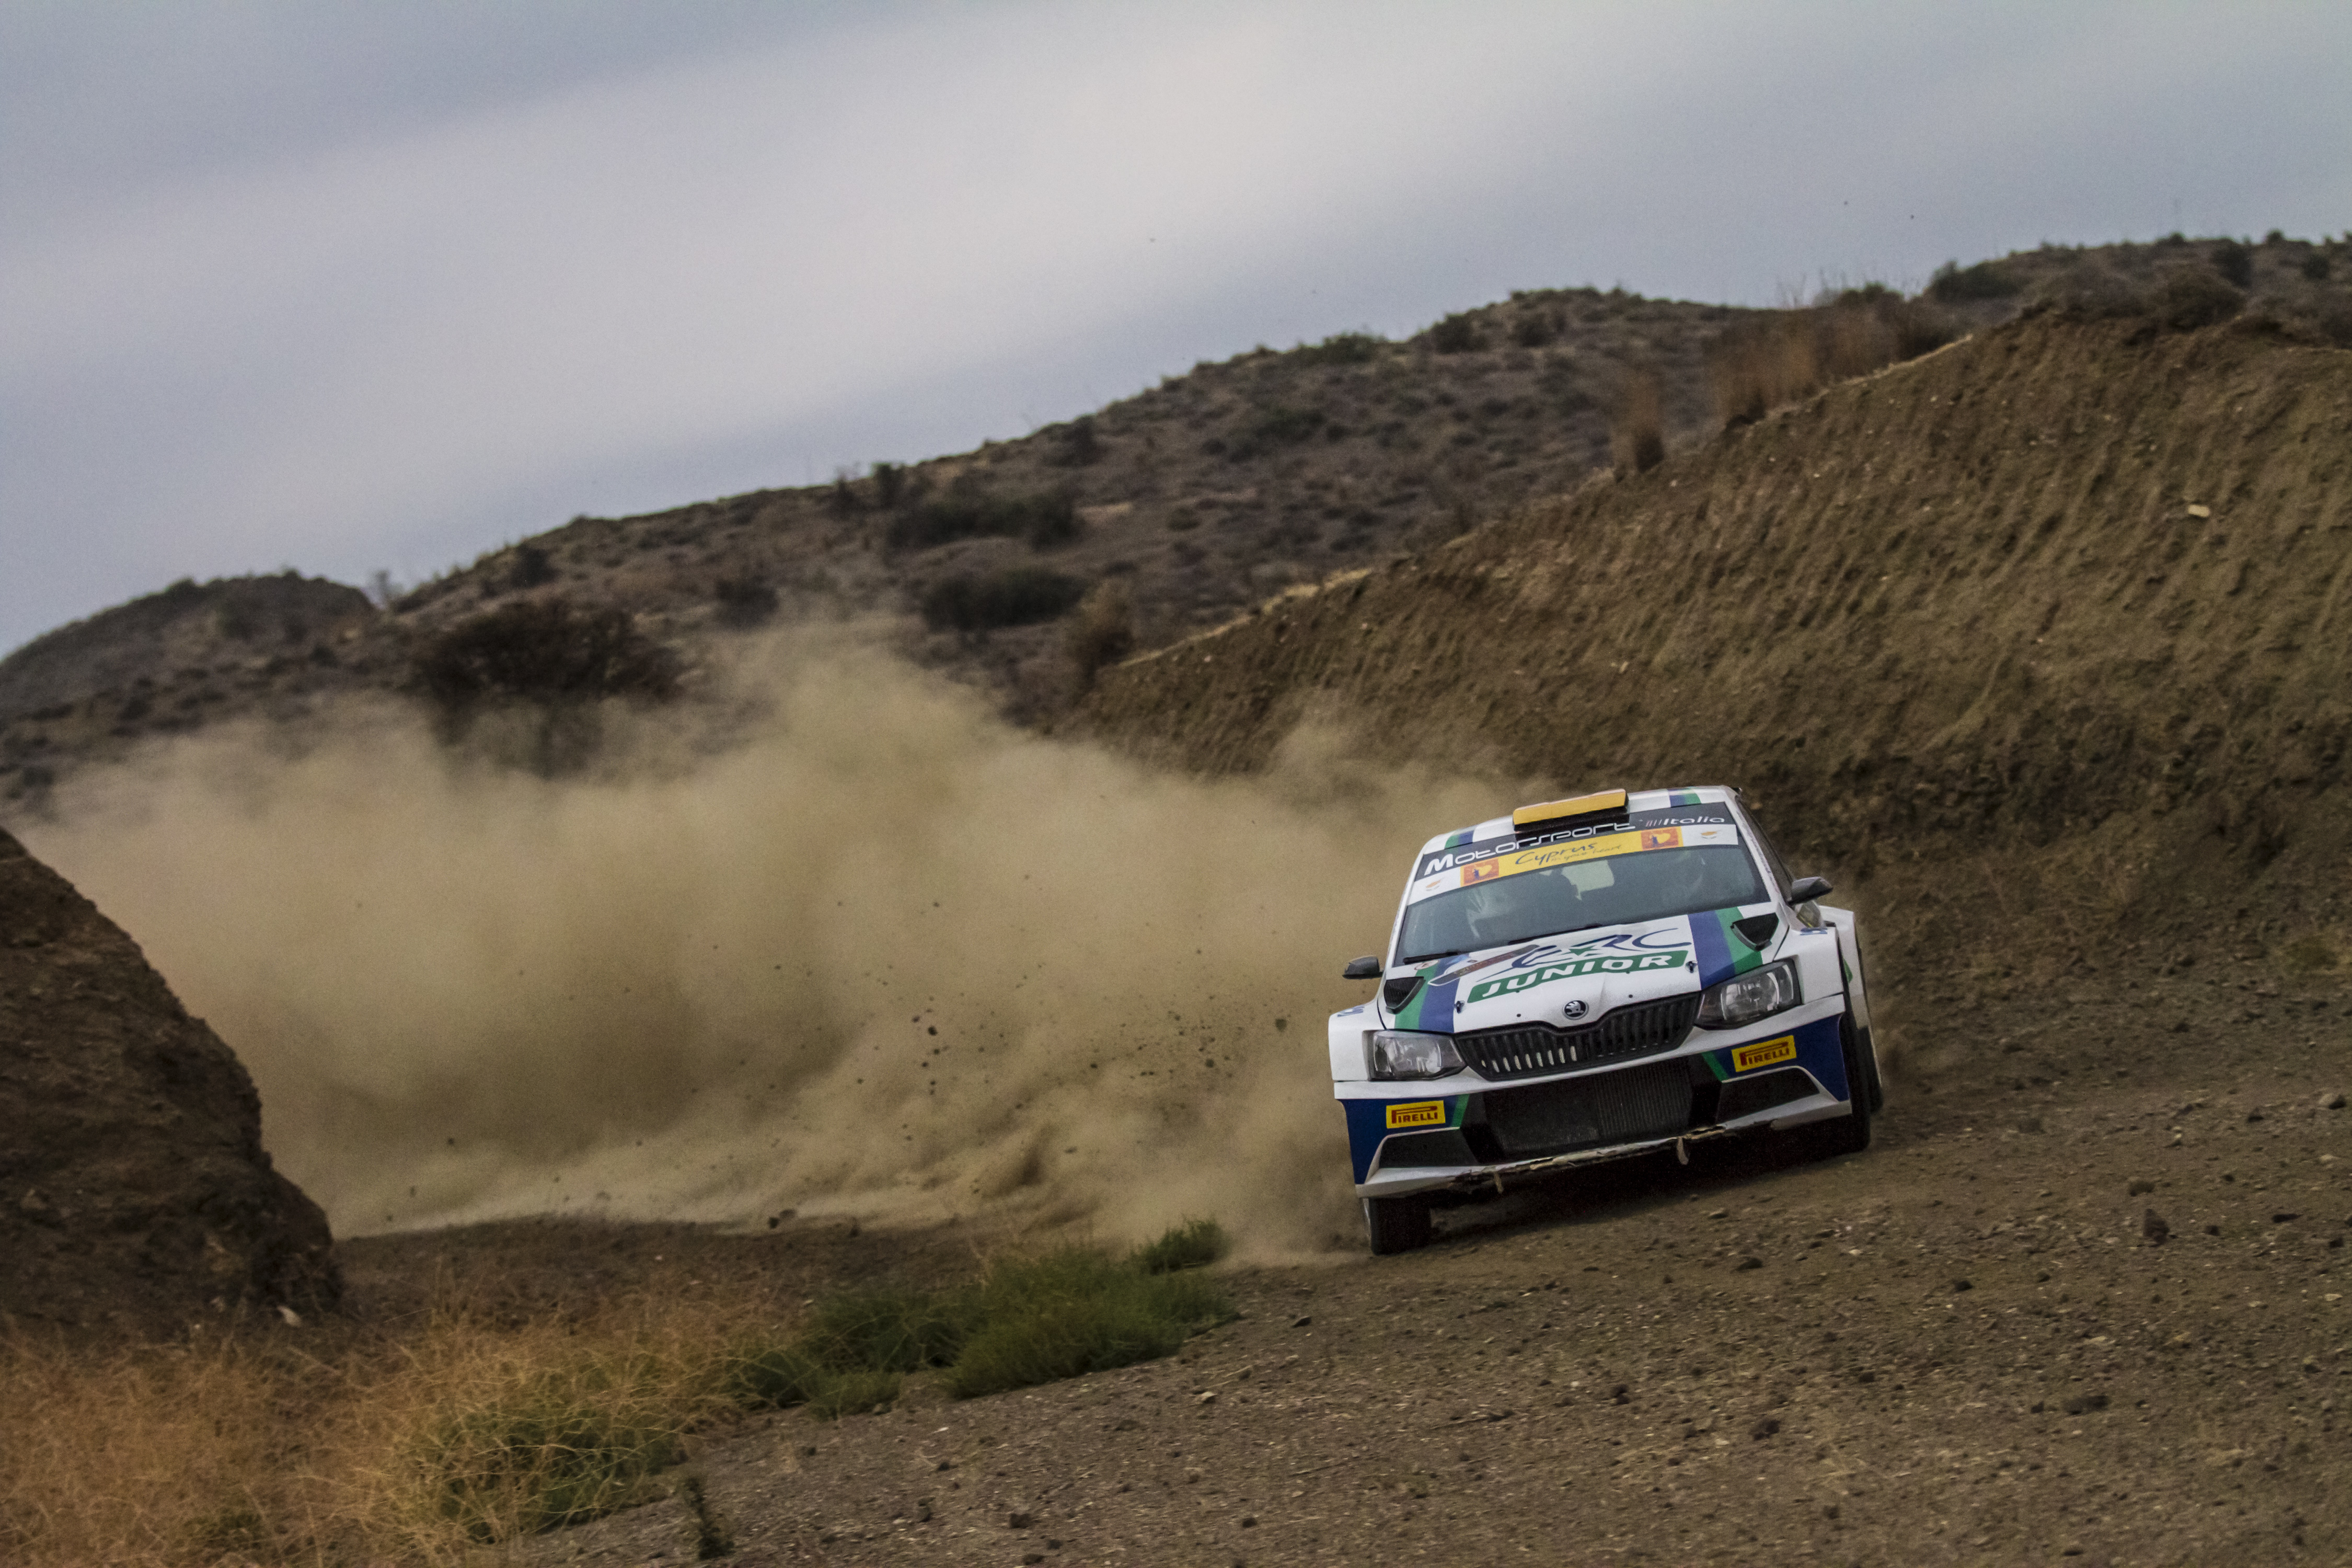 After SS5: Griebel's great R5 debut continues in the ERC